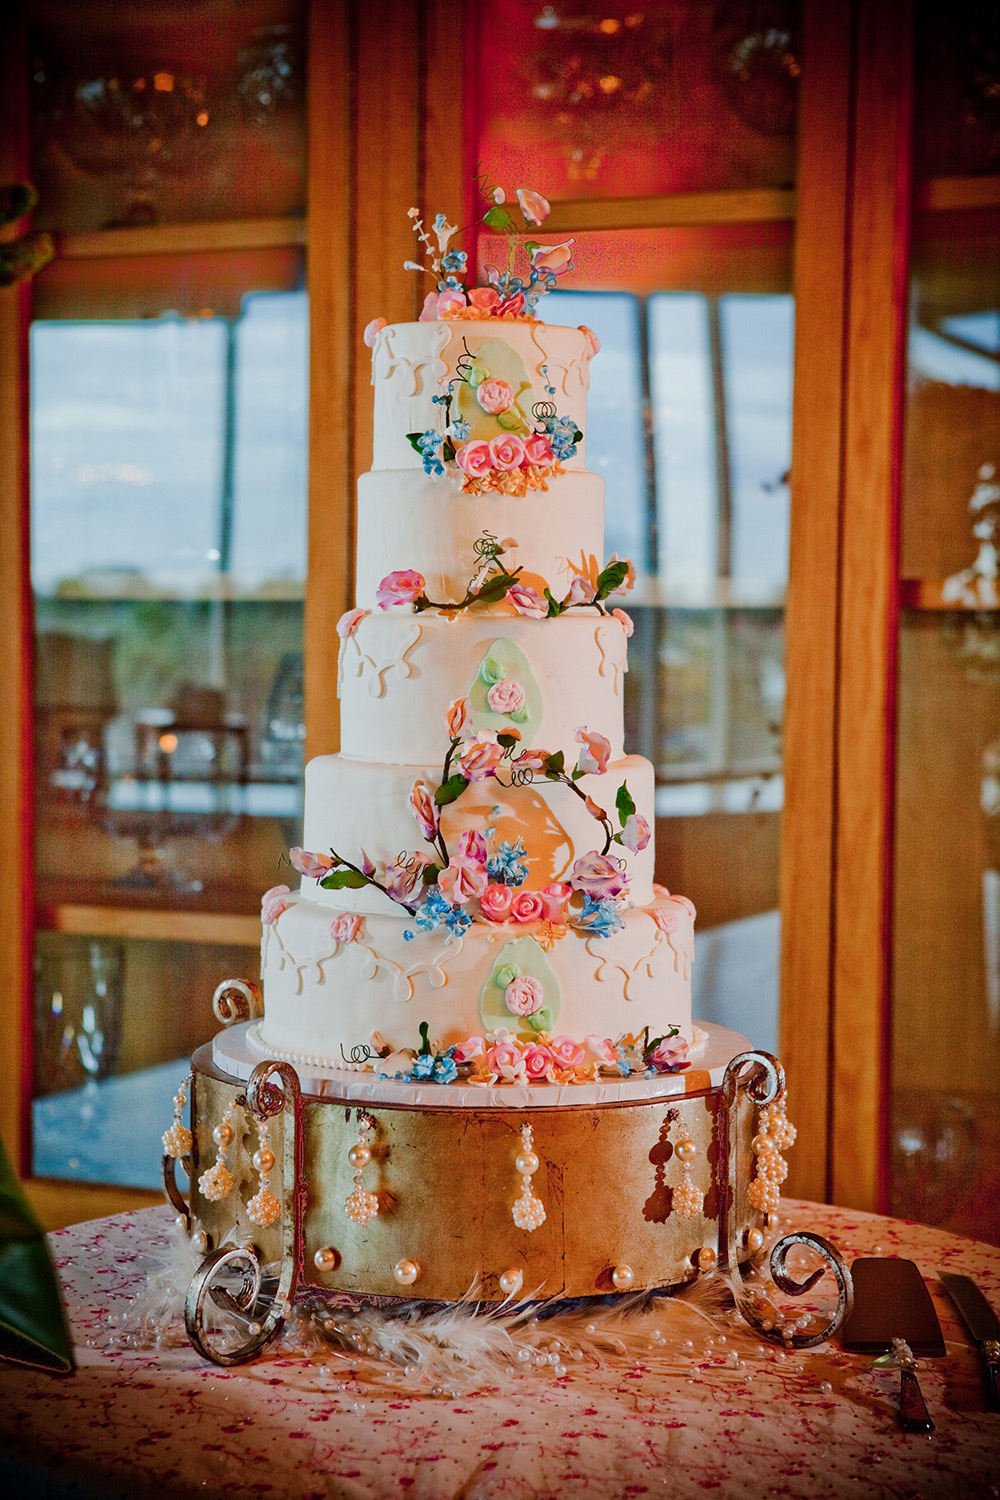 Floral Wedding Cake by Gambino's Bakery | Photo by: Images by Robert T